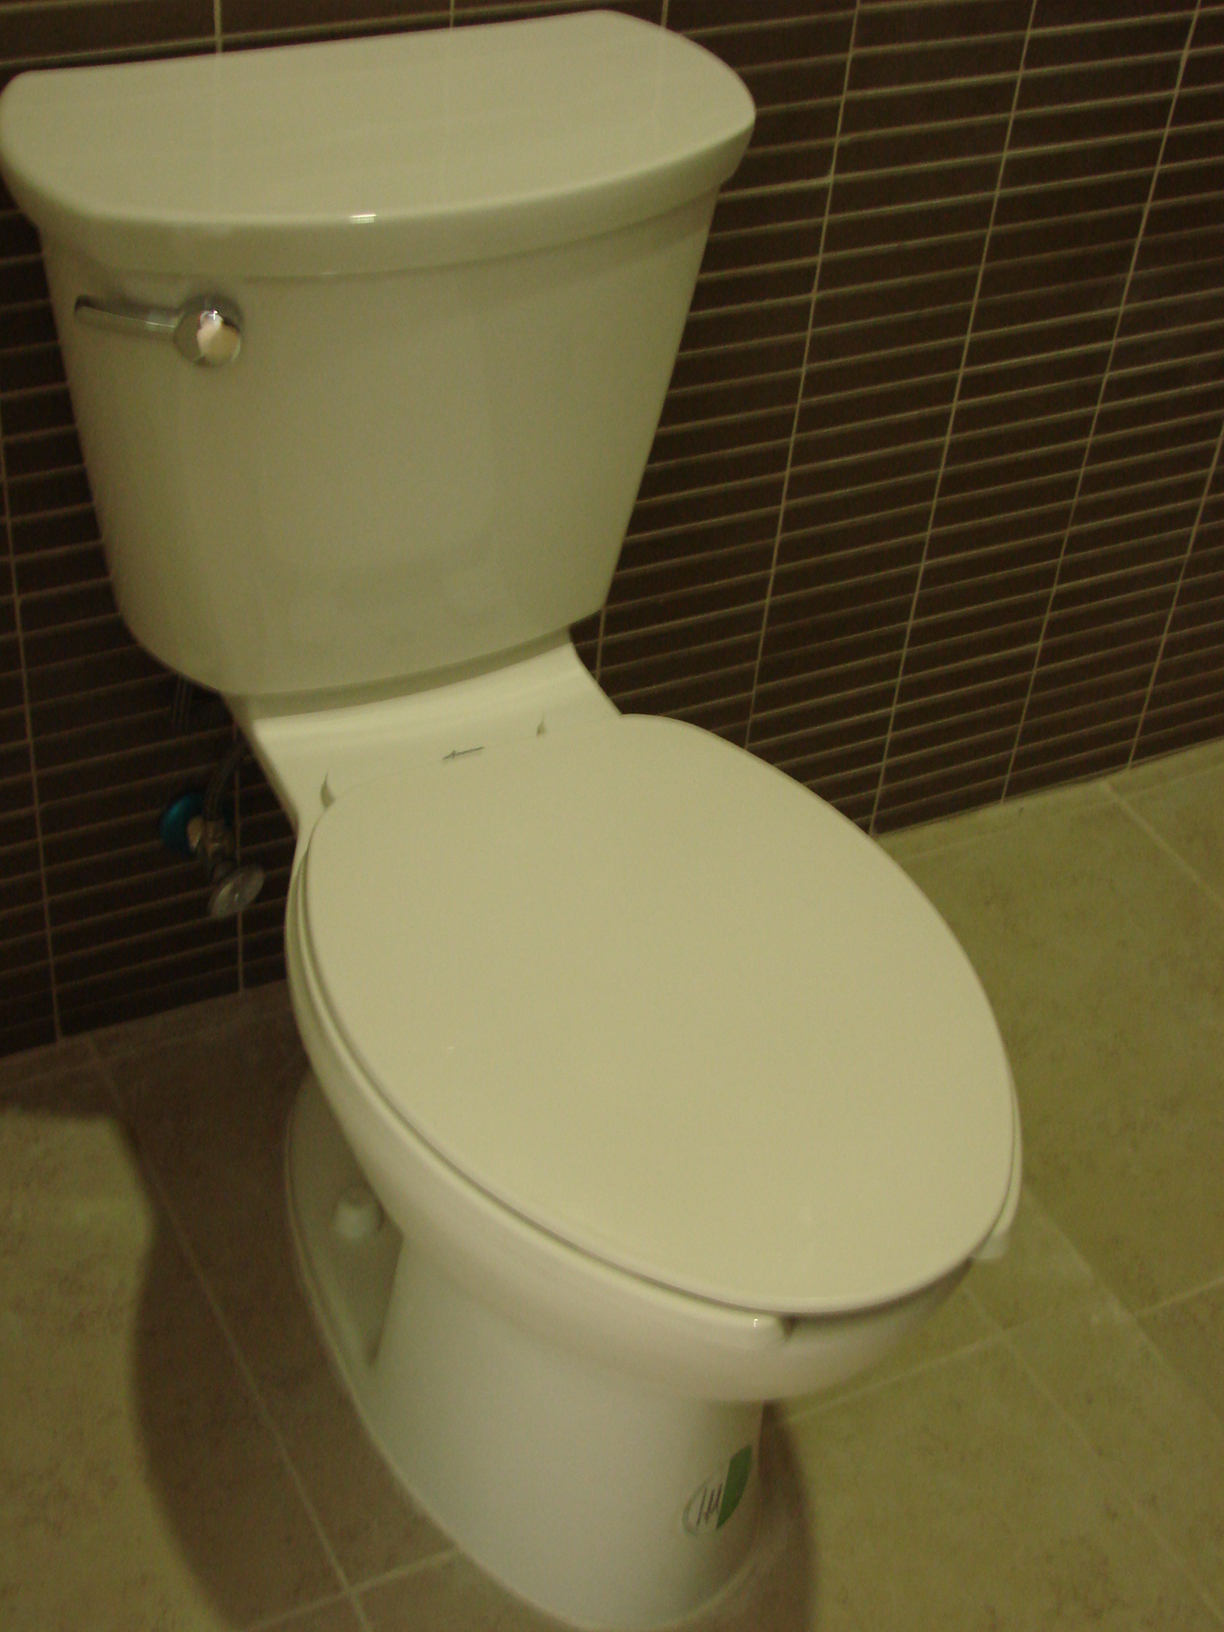 Commode Maya But Chelem Best Deal Sold Merida Yucatan Real Estate